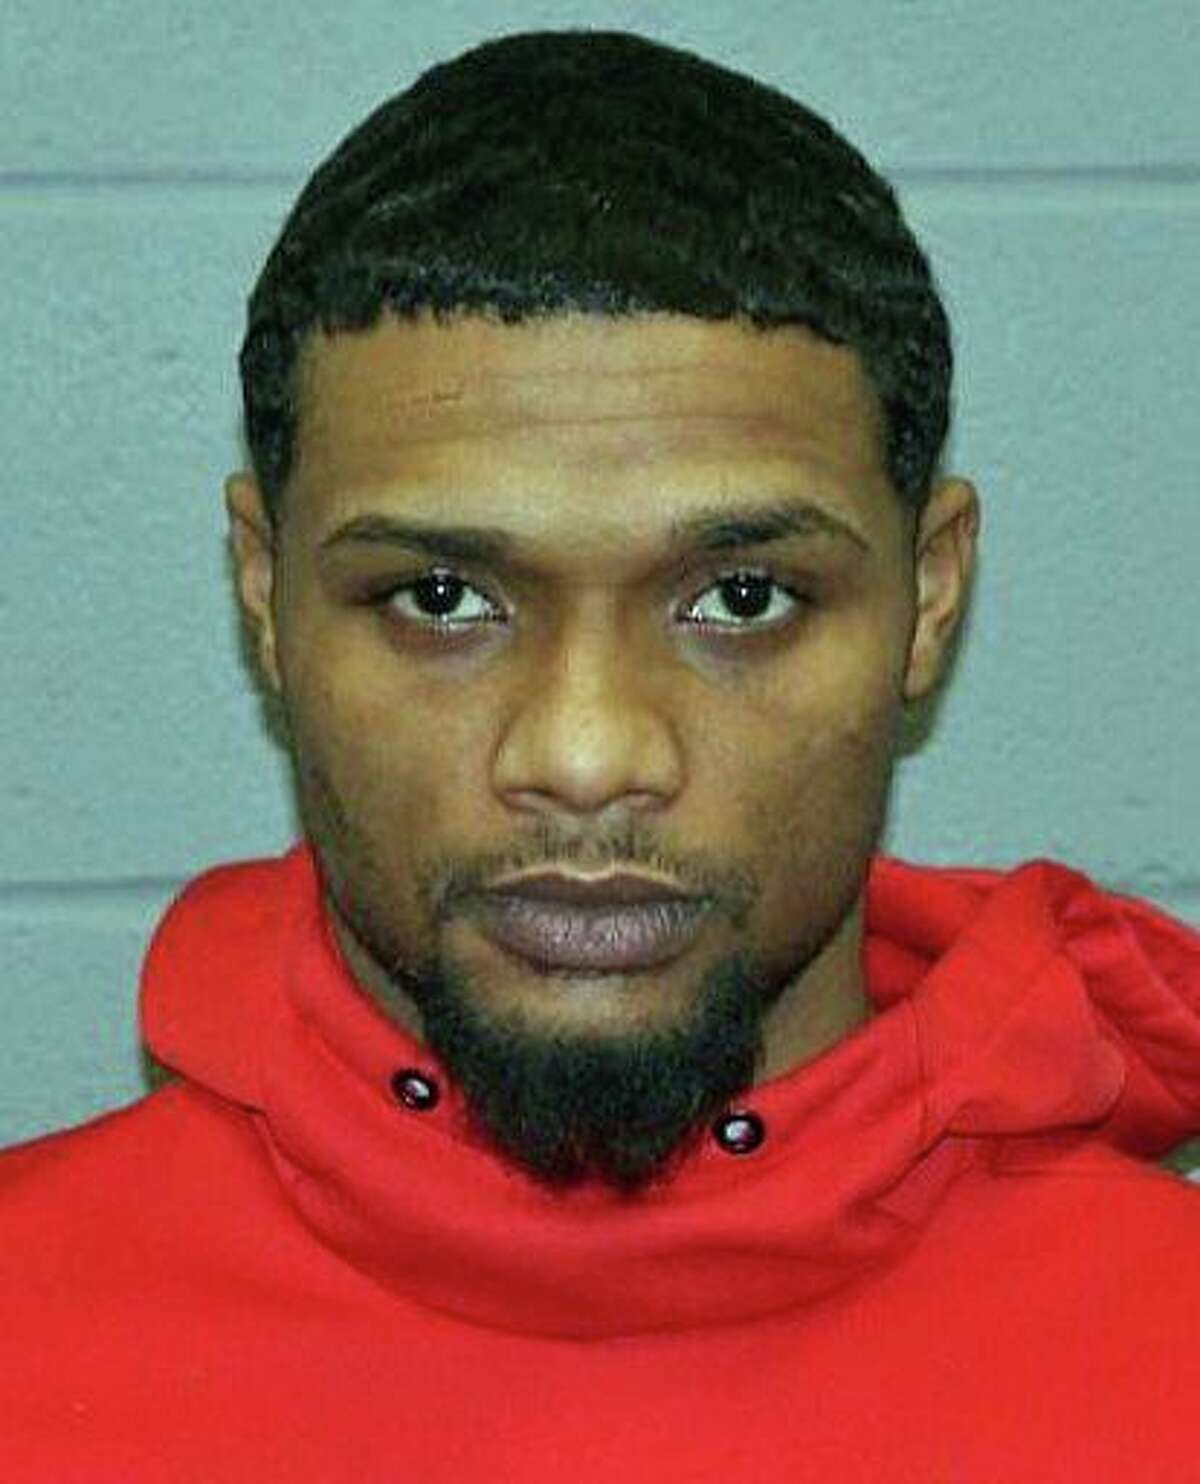 """Roznovsky Antonio Machado, 24, of Waterbury, is being sought by Naugatuck and State Police in connection with a traffic stop where a Naugatuck officer fired a shot at a vehicle. Police believe Machado was the driver of that vehicle. Deputy Chief Christopher McAllister said that the officer stopped the vehicle """"as a result of observing criminal activity."""" During the course of the traffic stop the officer discharged his weapon at the vehicle while it drove at him, police said."""